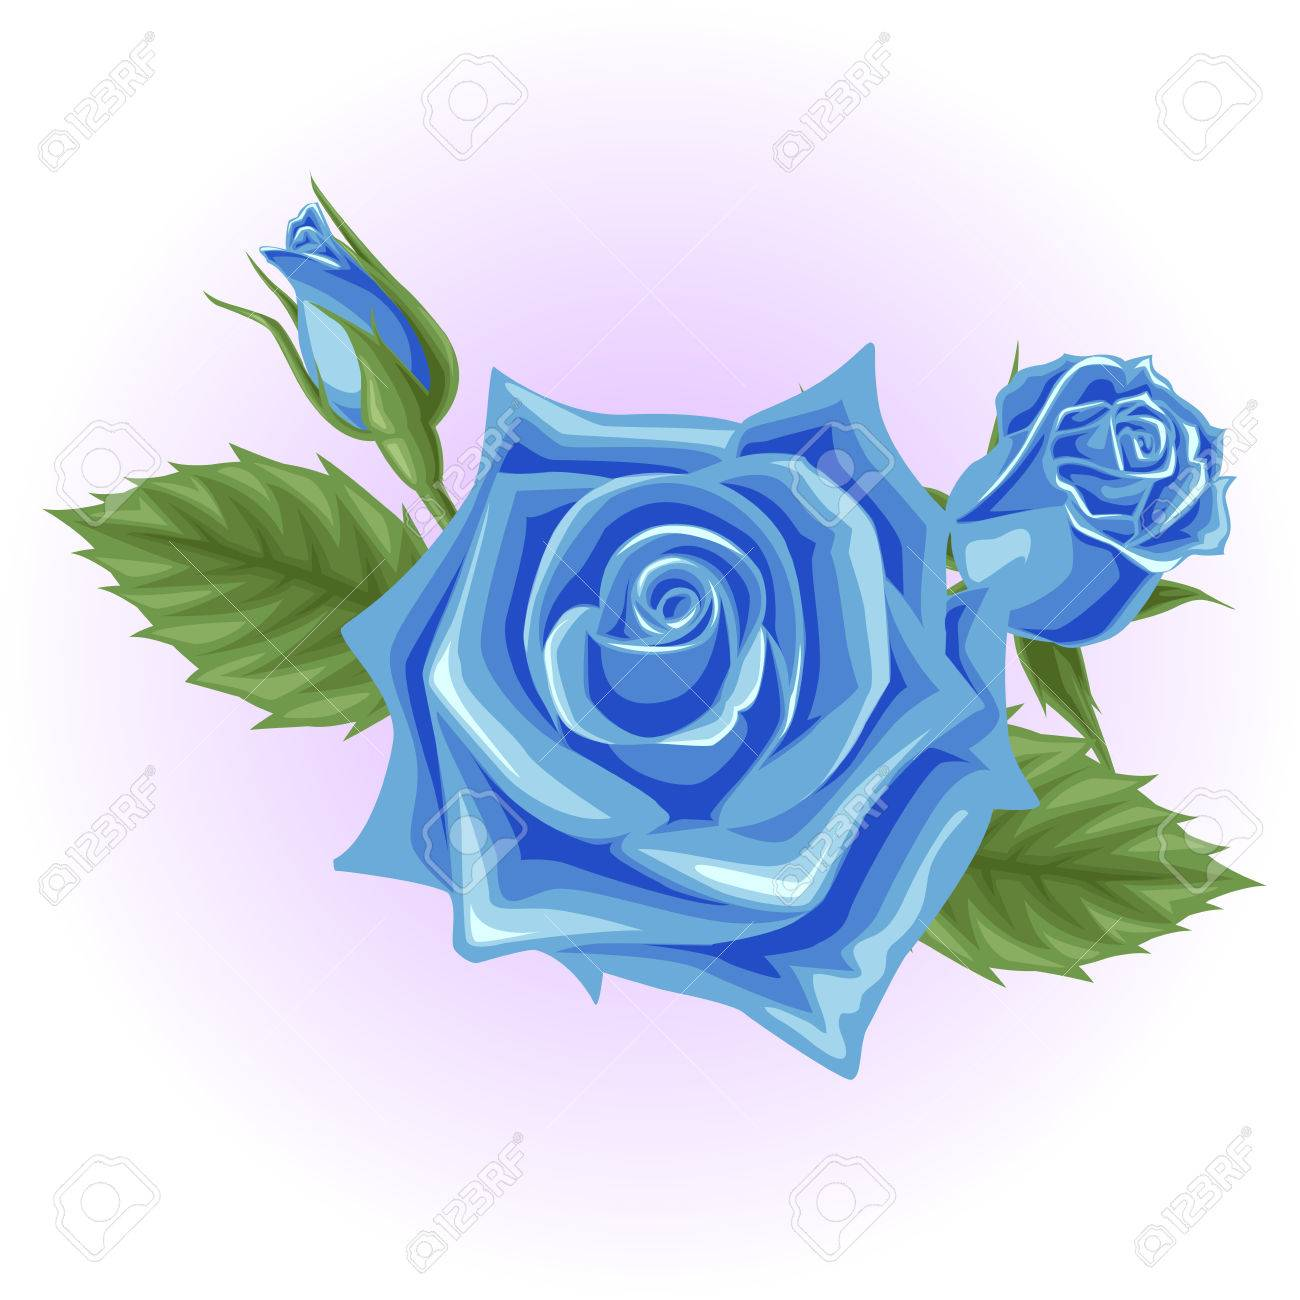 Blue Rose Flower Illustration Royalty Free Cliparts Vectors And